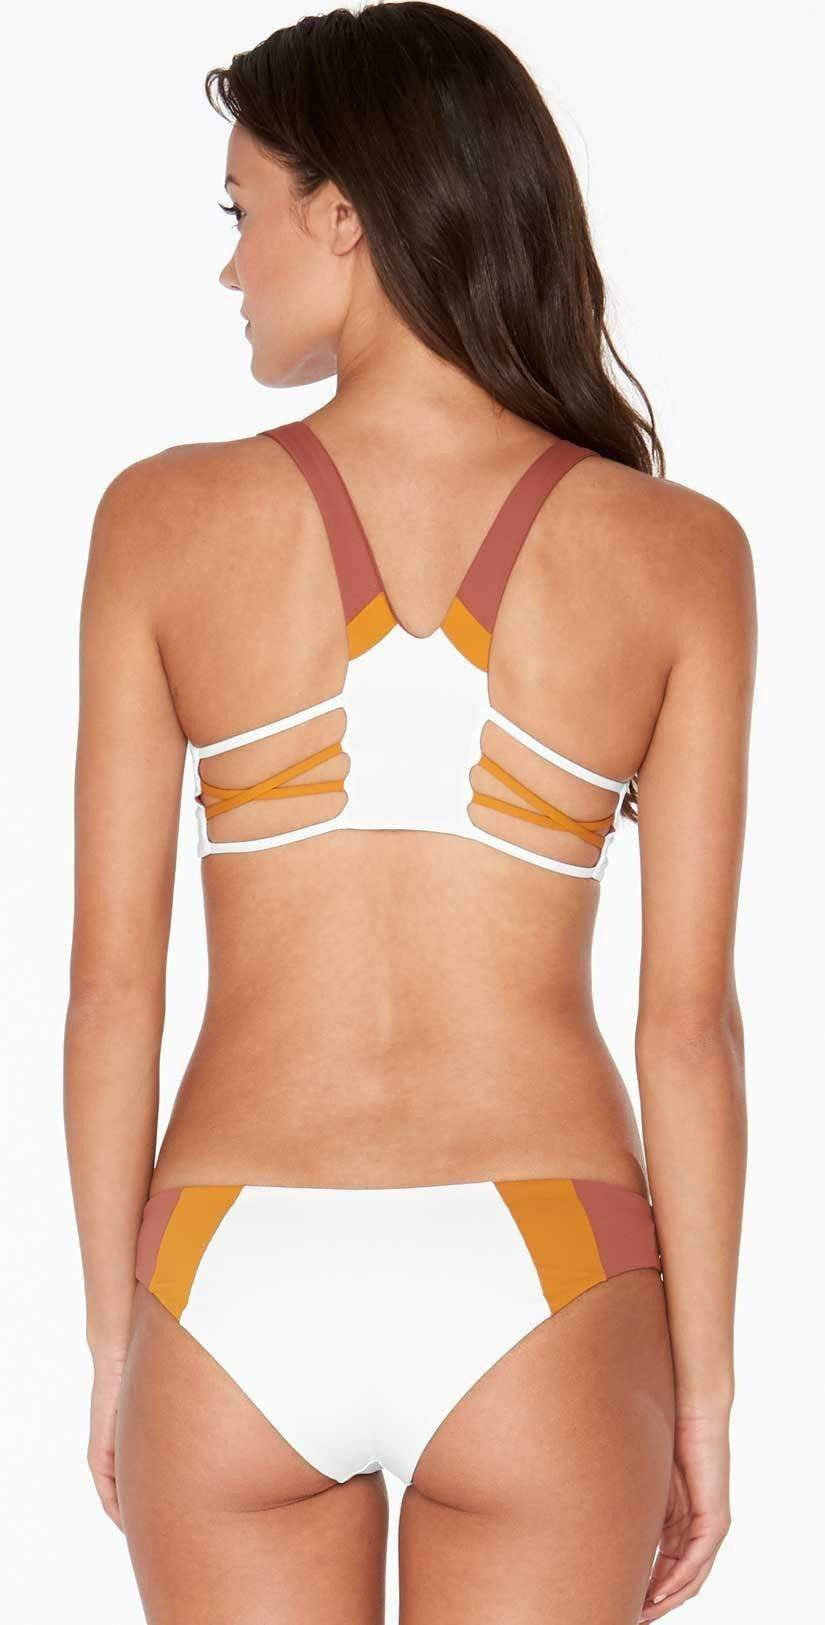 L Space Mia Color Block Bottom in White CBMAC18-WHT: